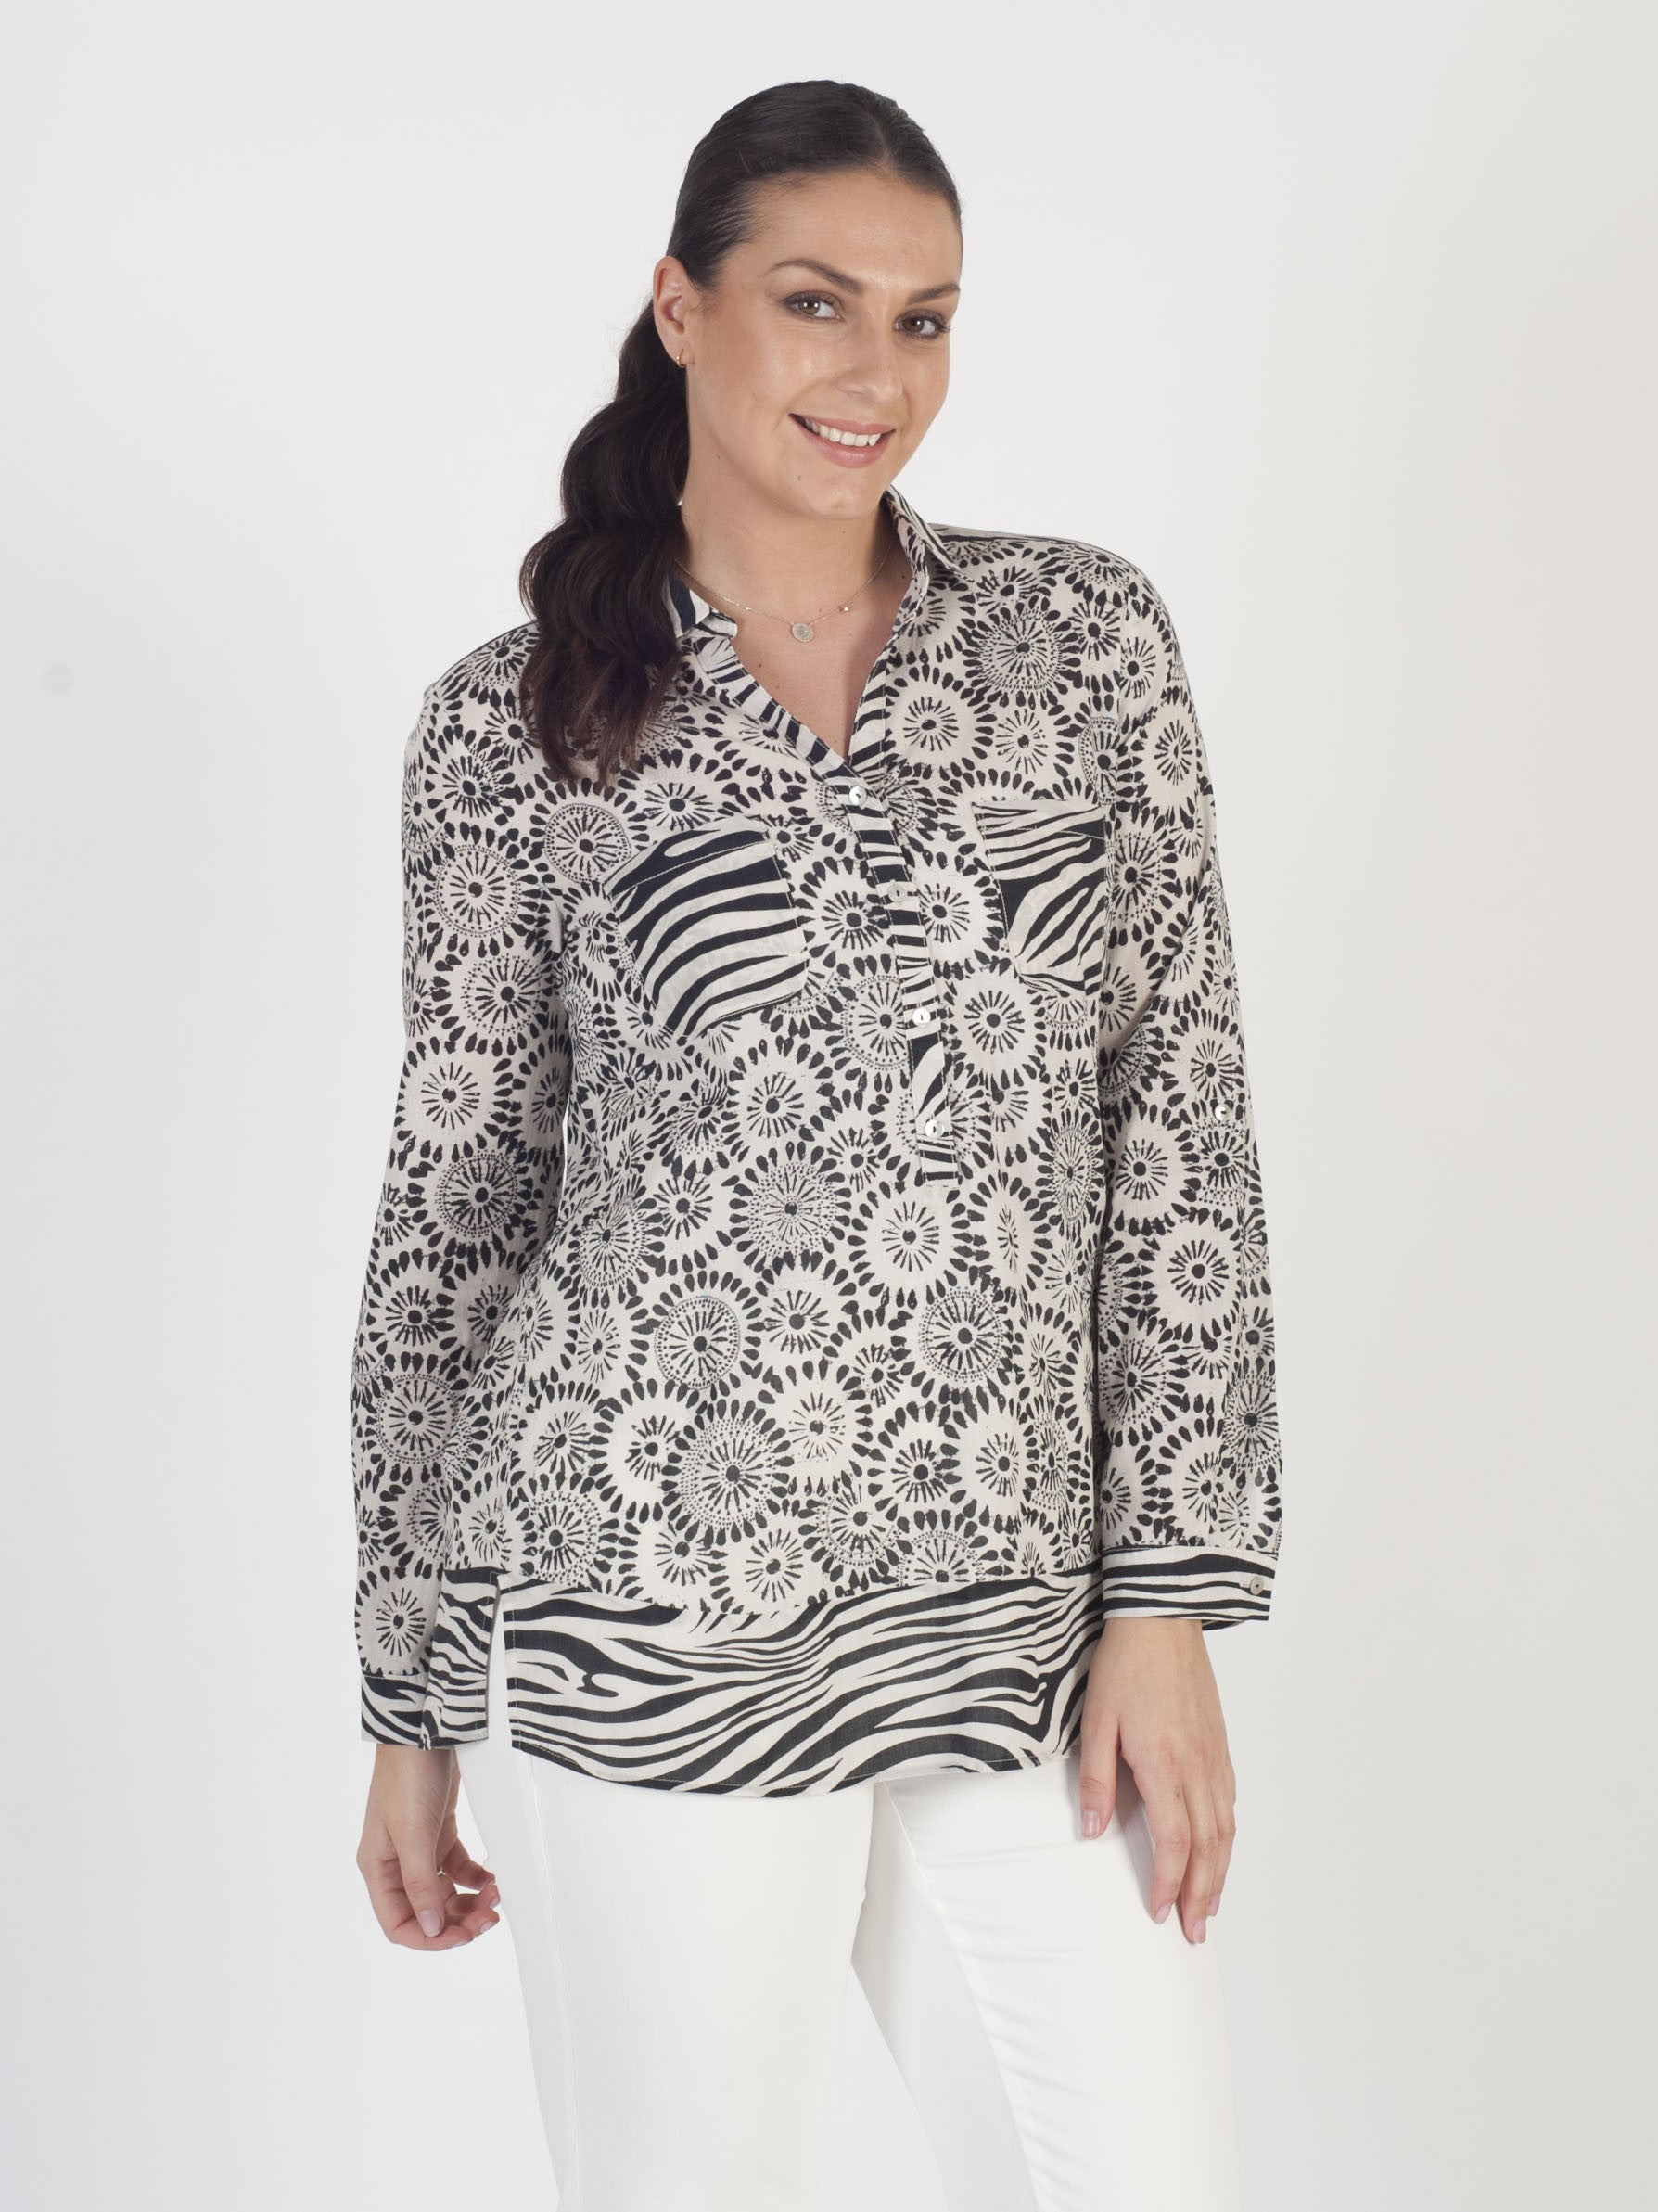 Gerry Weber Black And White Tribal Print Blouse